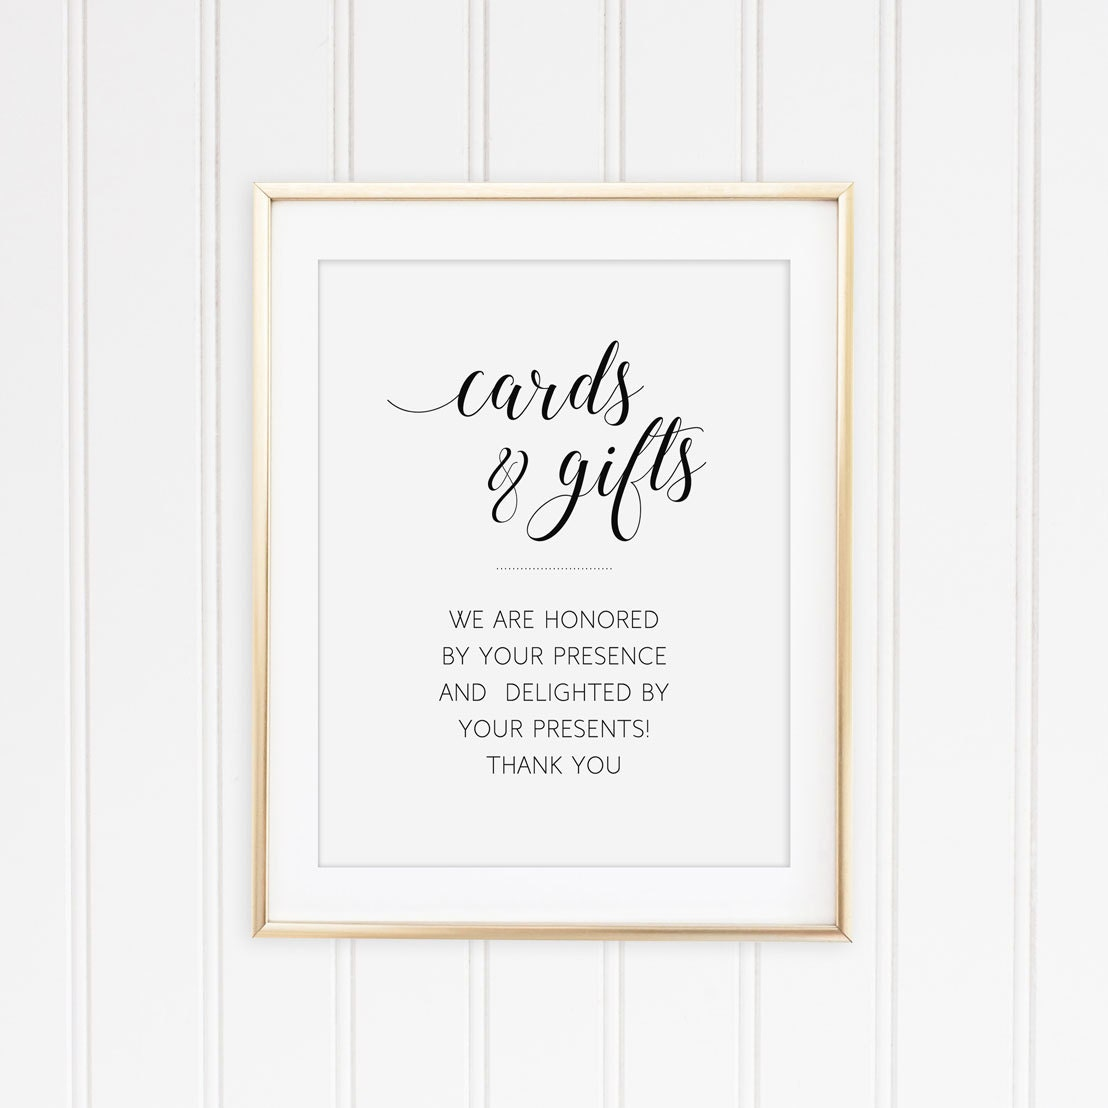 Wedding Gift Table: Cards And Gifts Sign Wedding Gift Table Sign Wedding Card